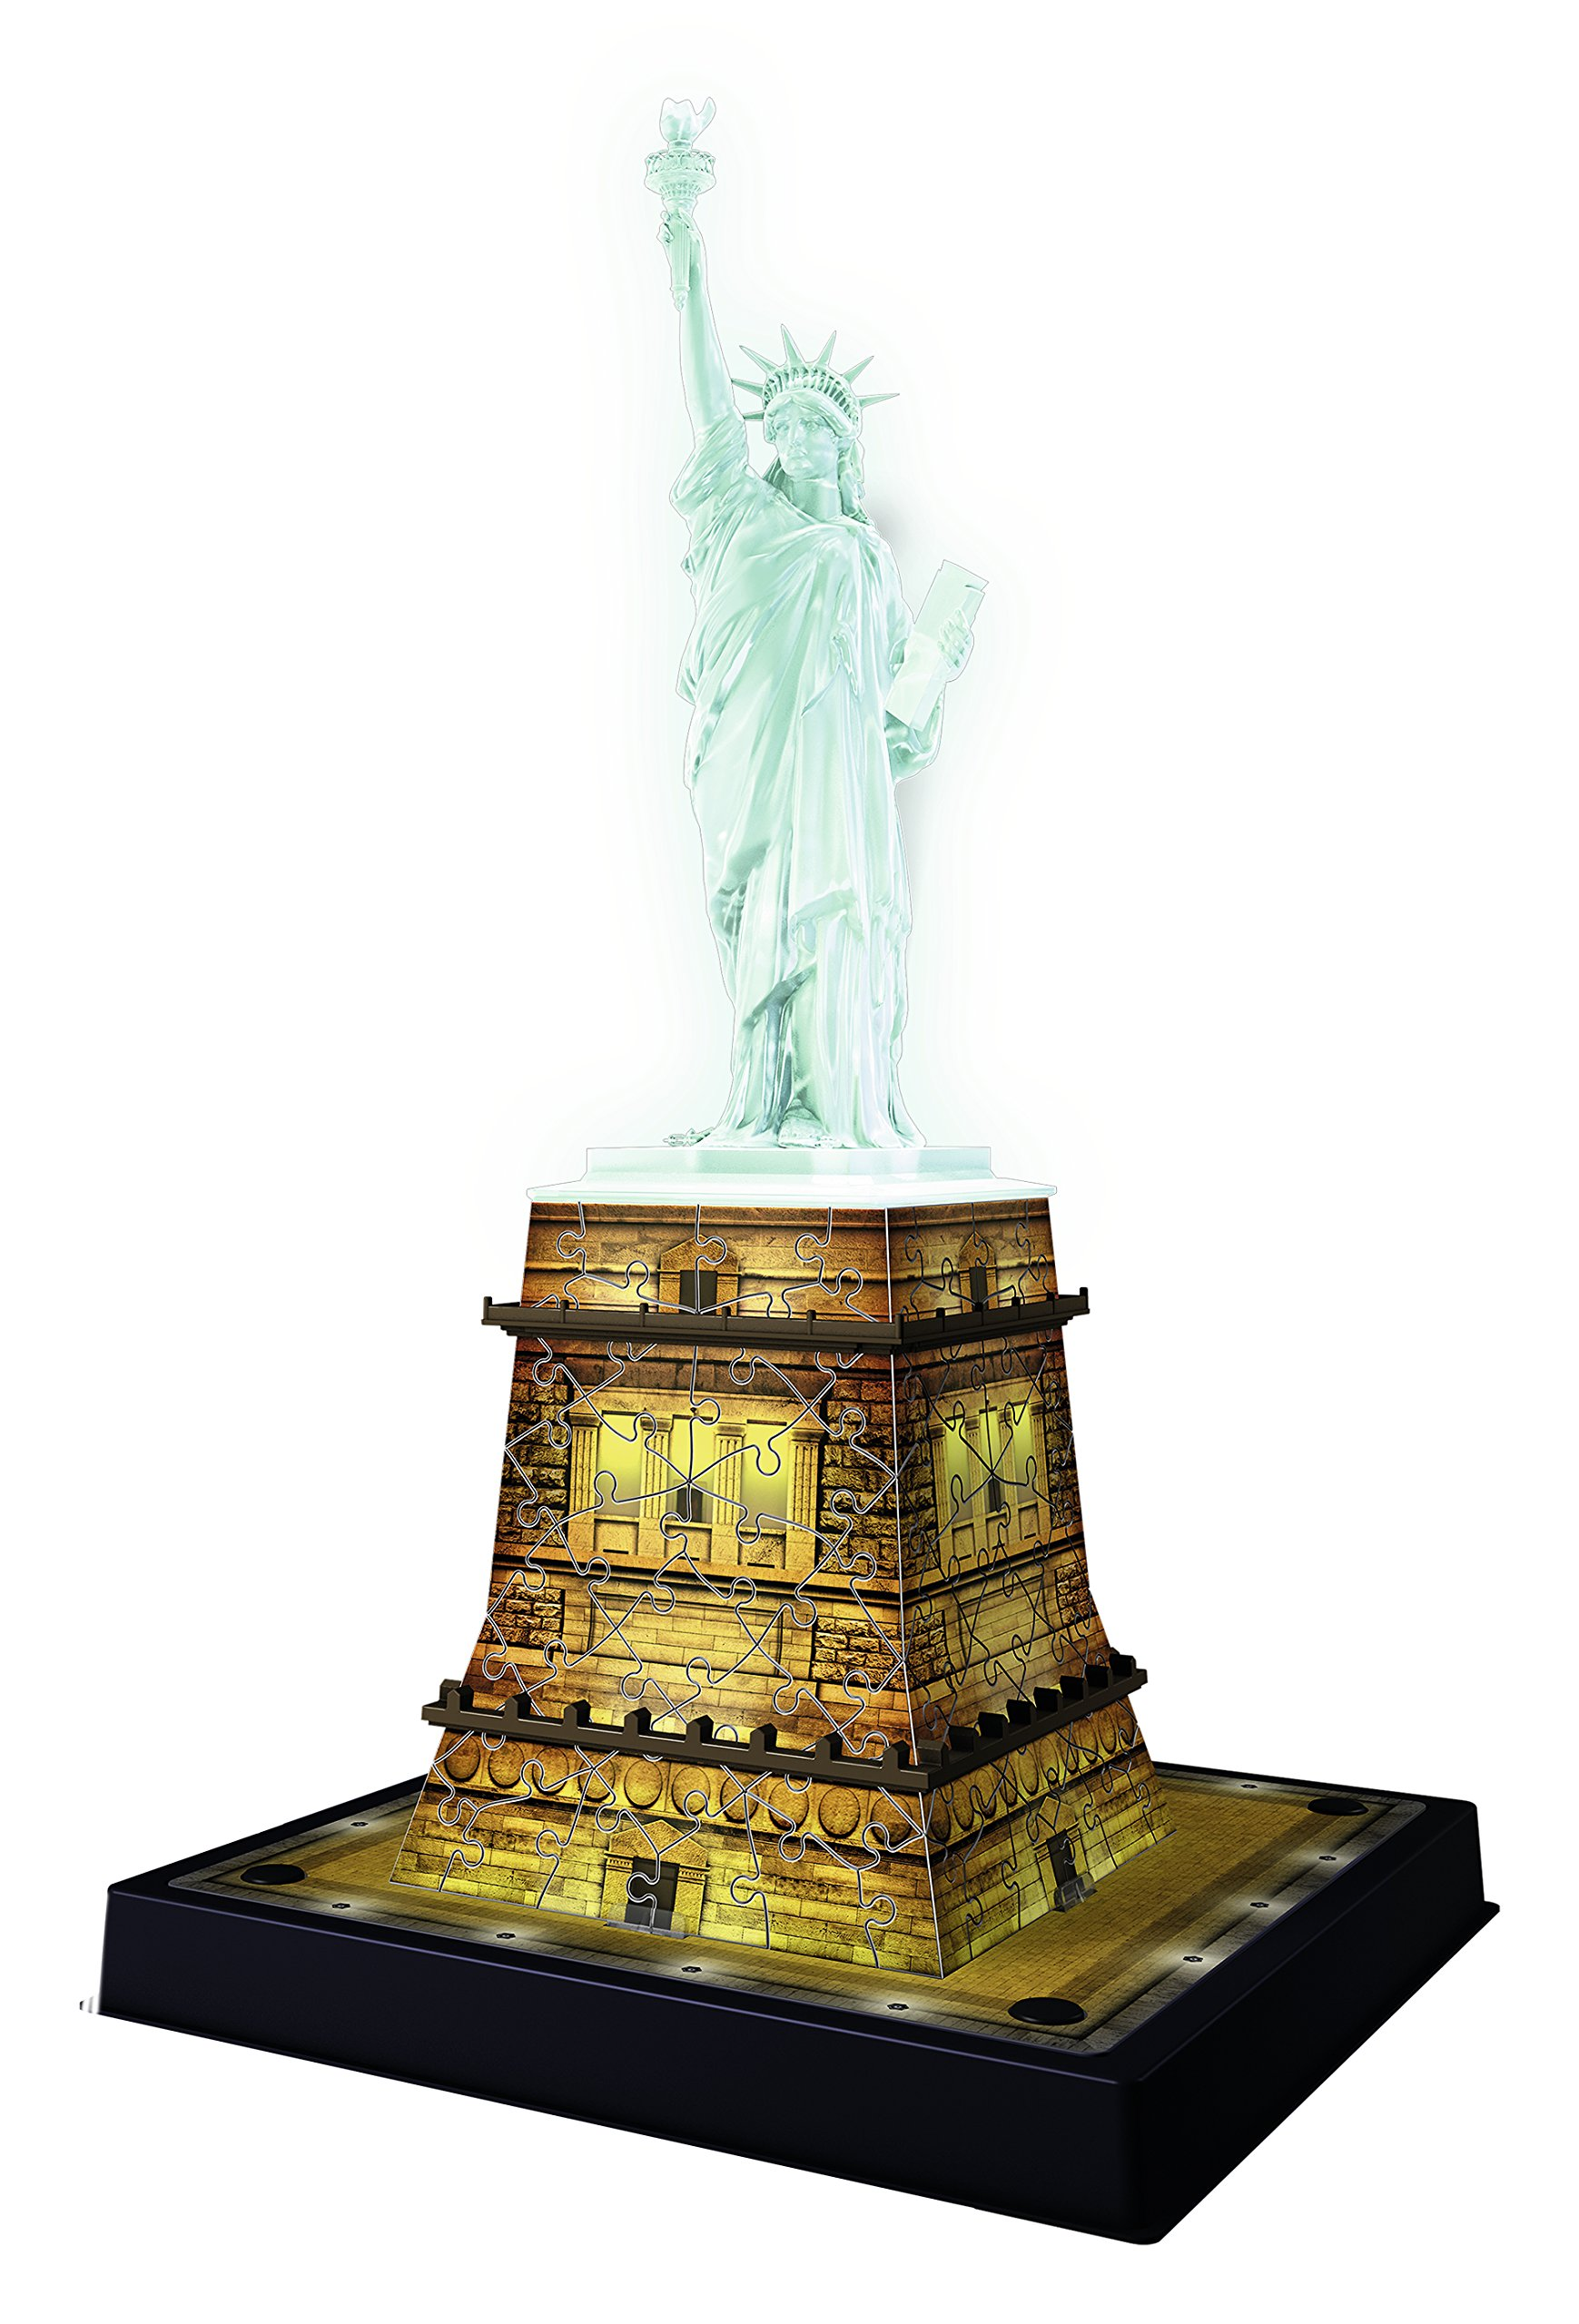 Ravensburger Statue of Liberty Night Edition 108 Piece 3D Jigsaw Puzzle for Kids and Adults - Easy Click Technology Means Pieces Fit Together Perfectly